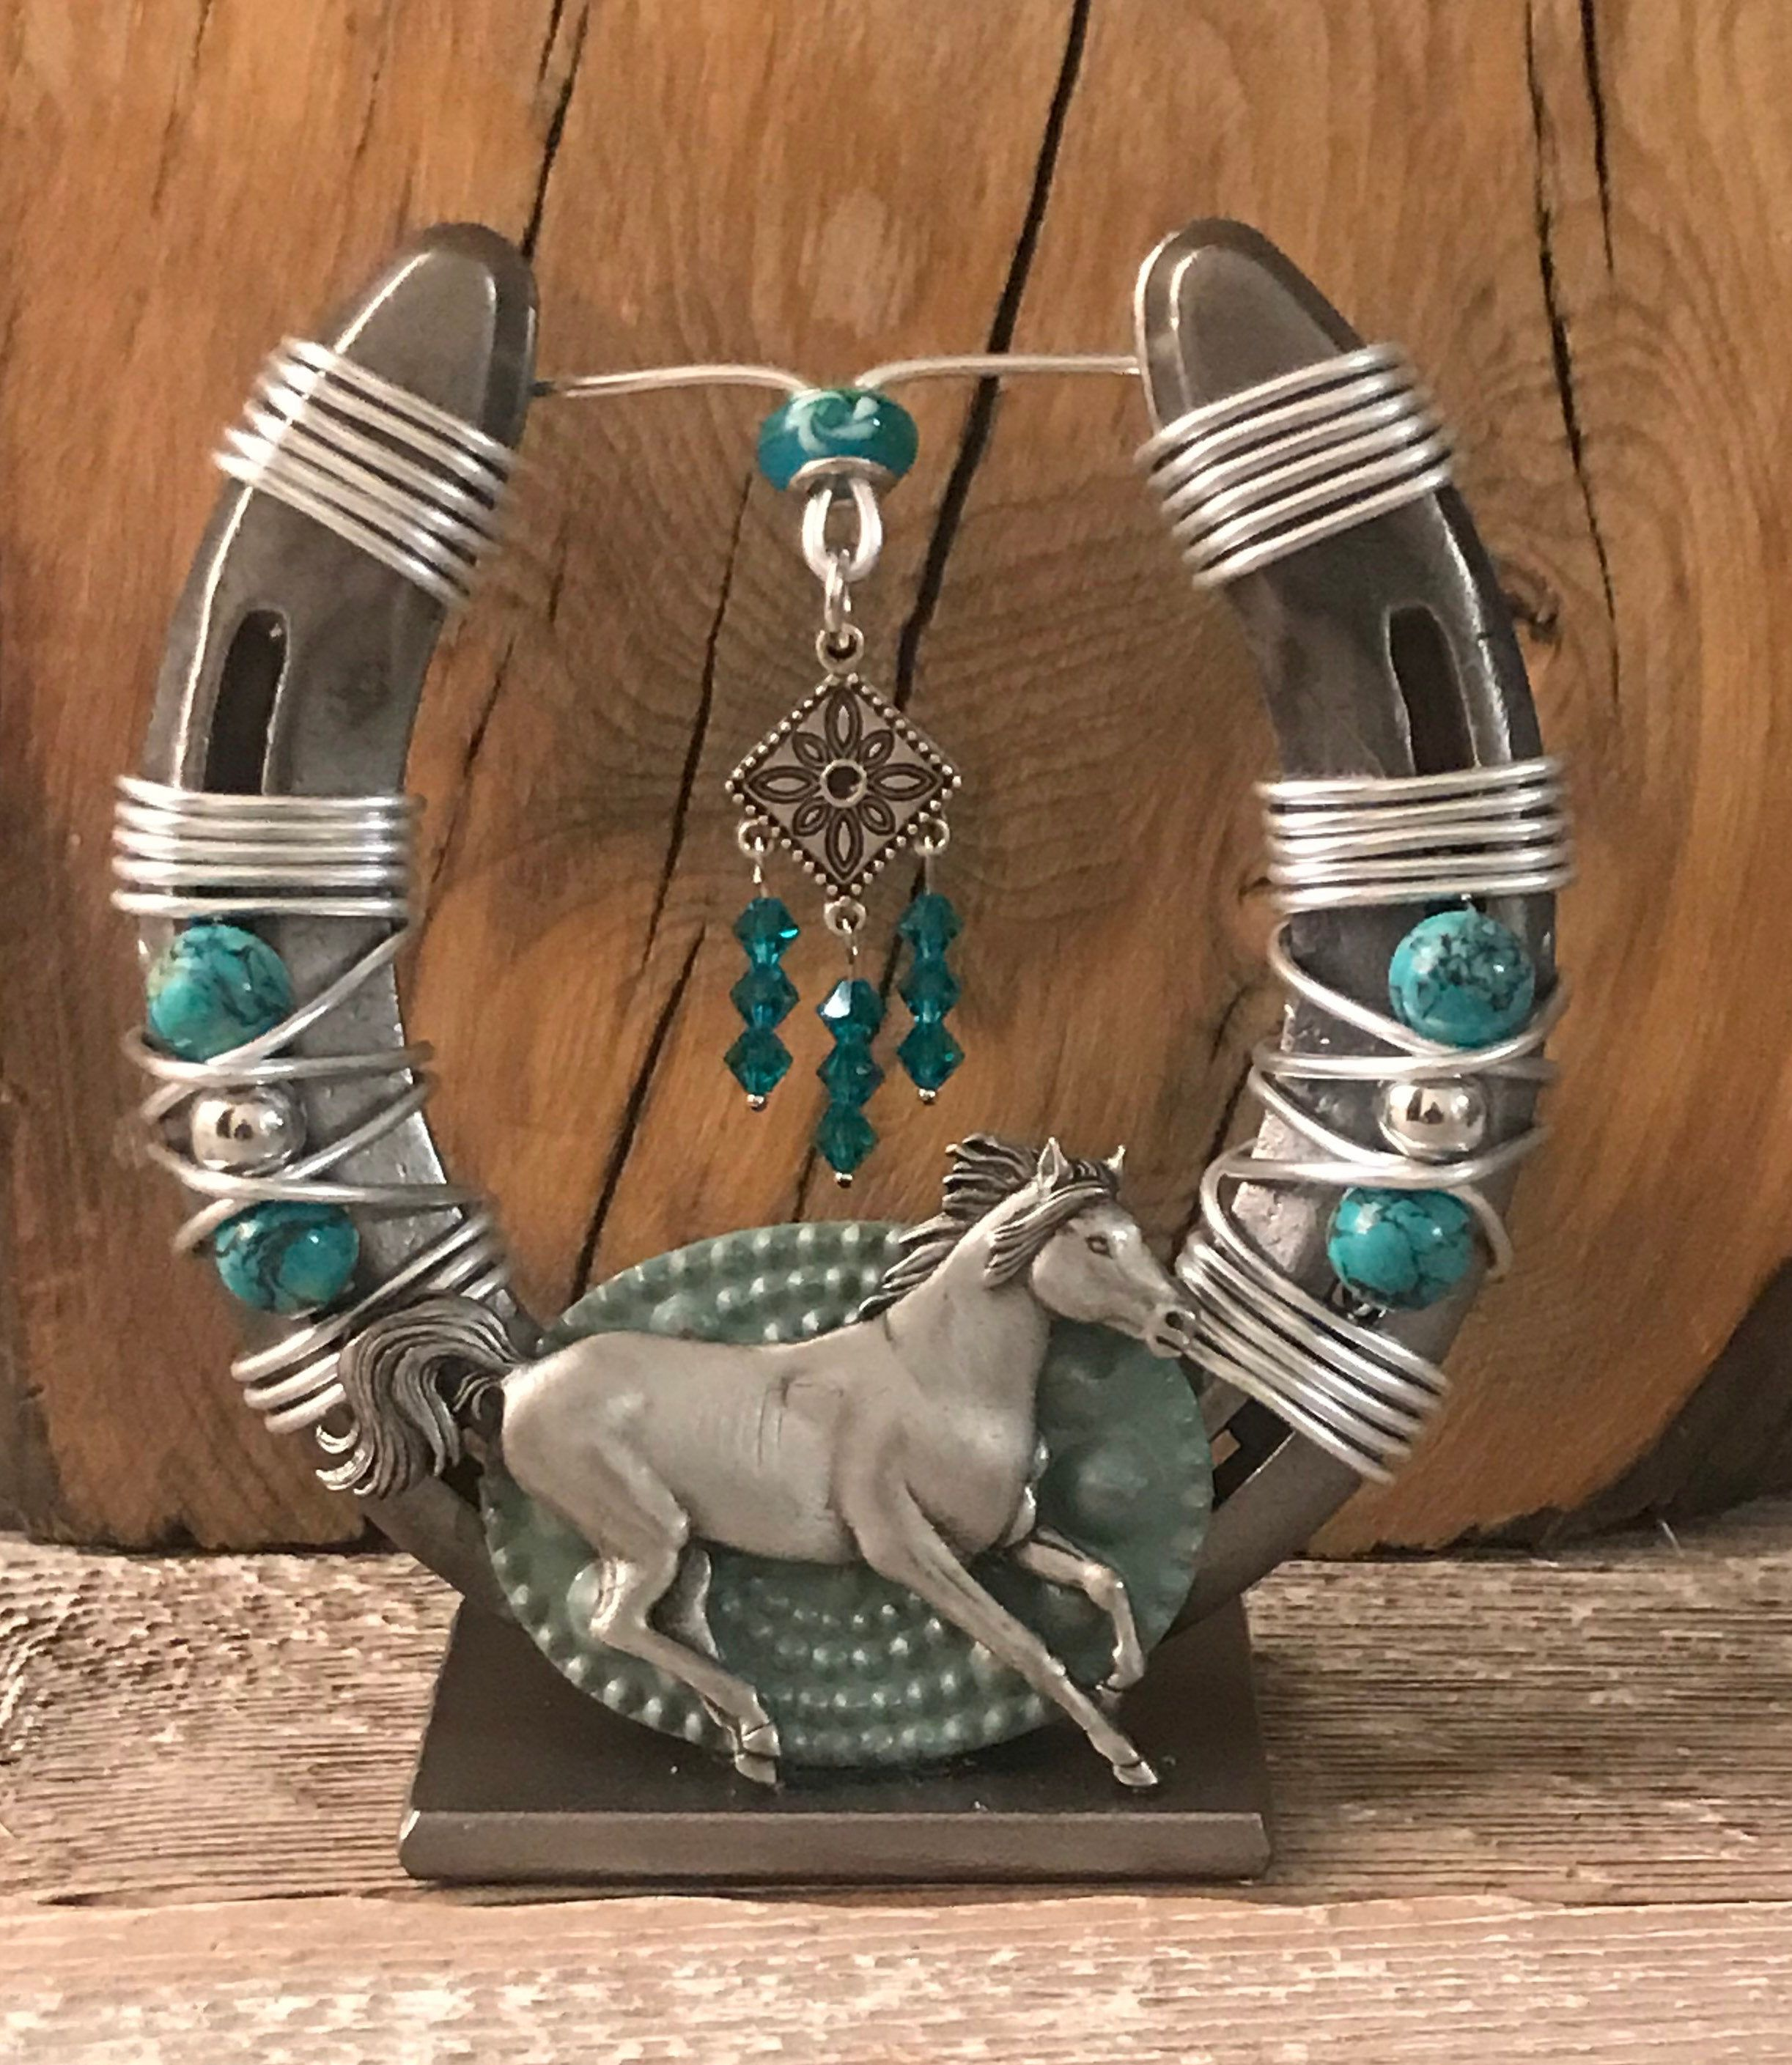 Decorated lucky horseshoe art horse lover gift native